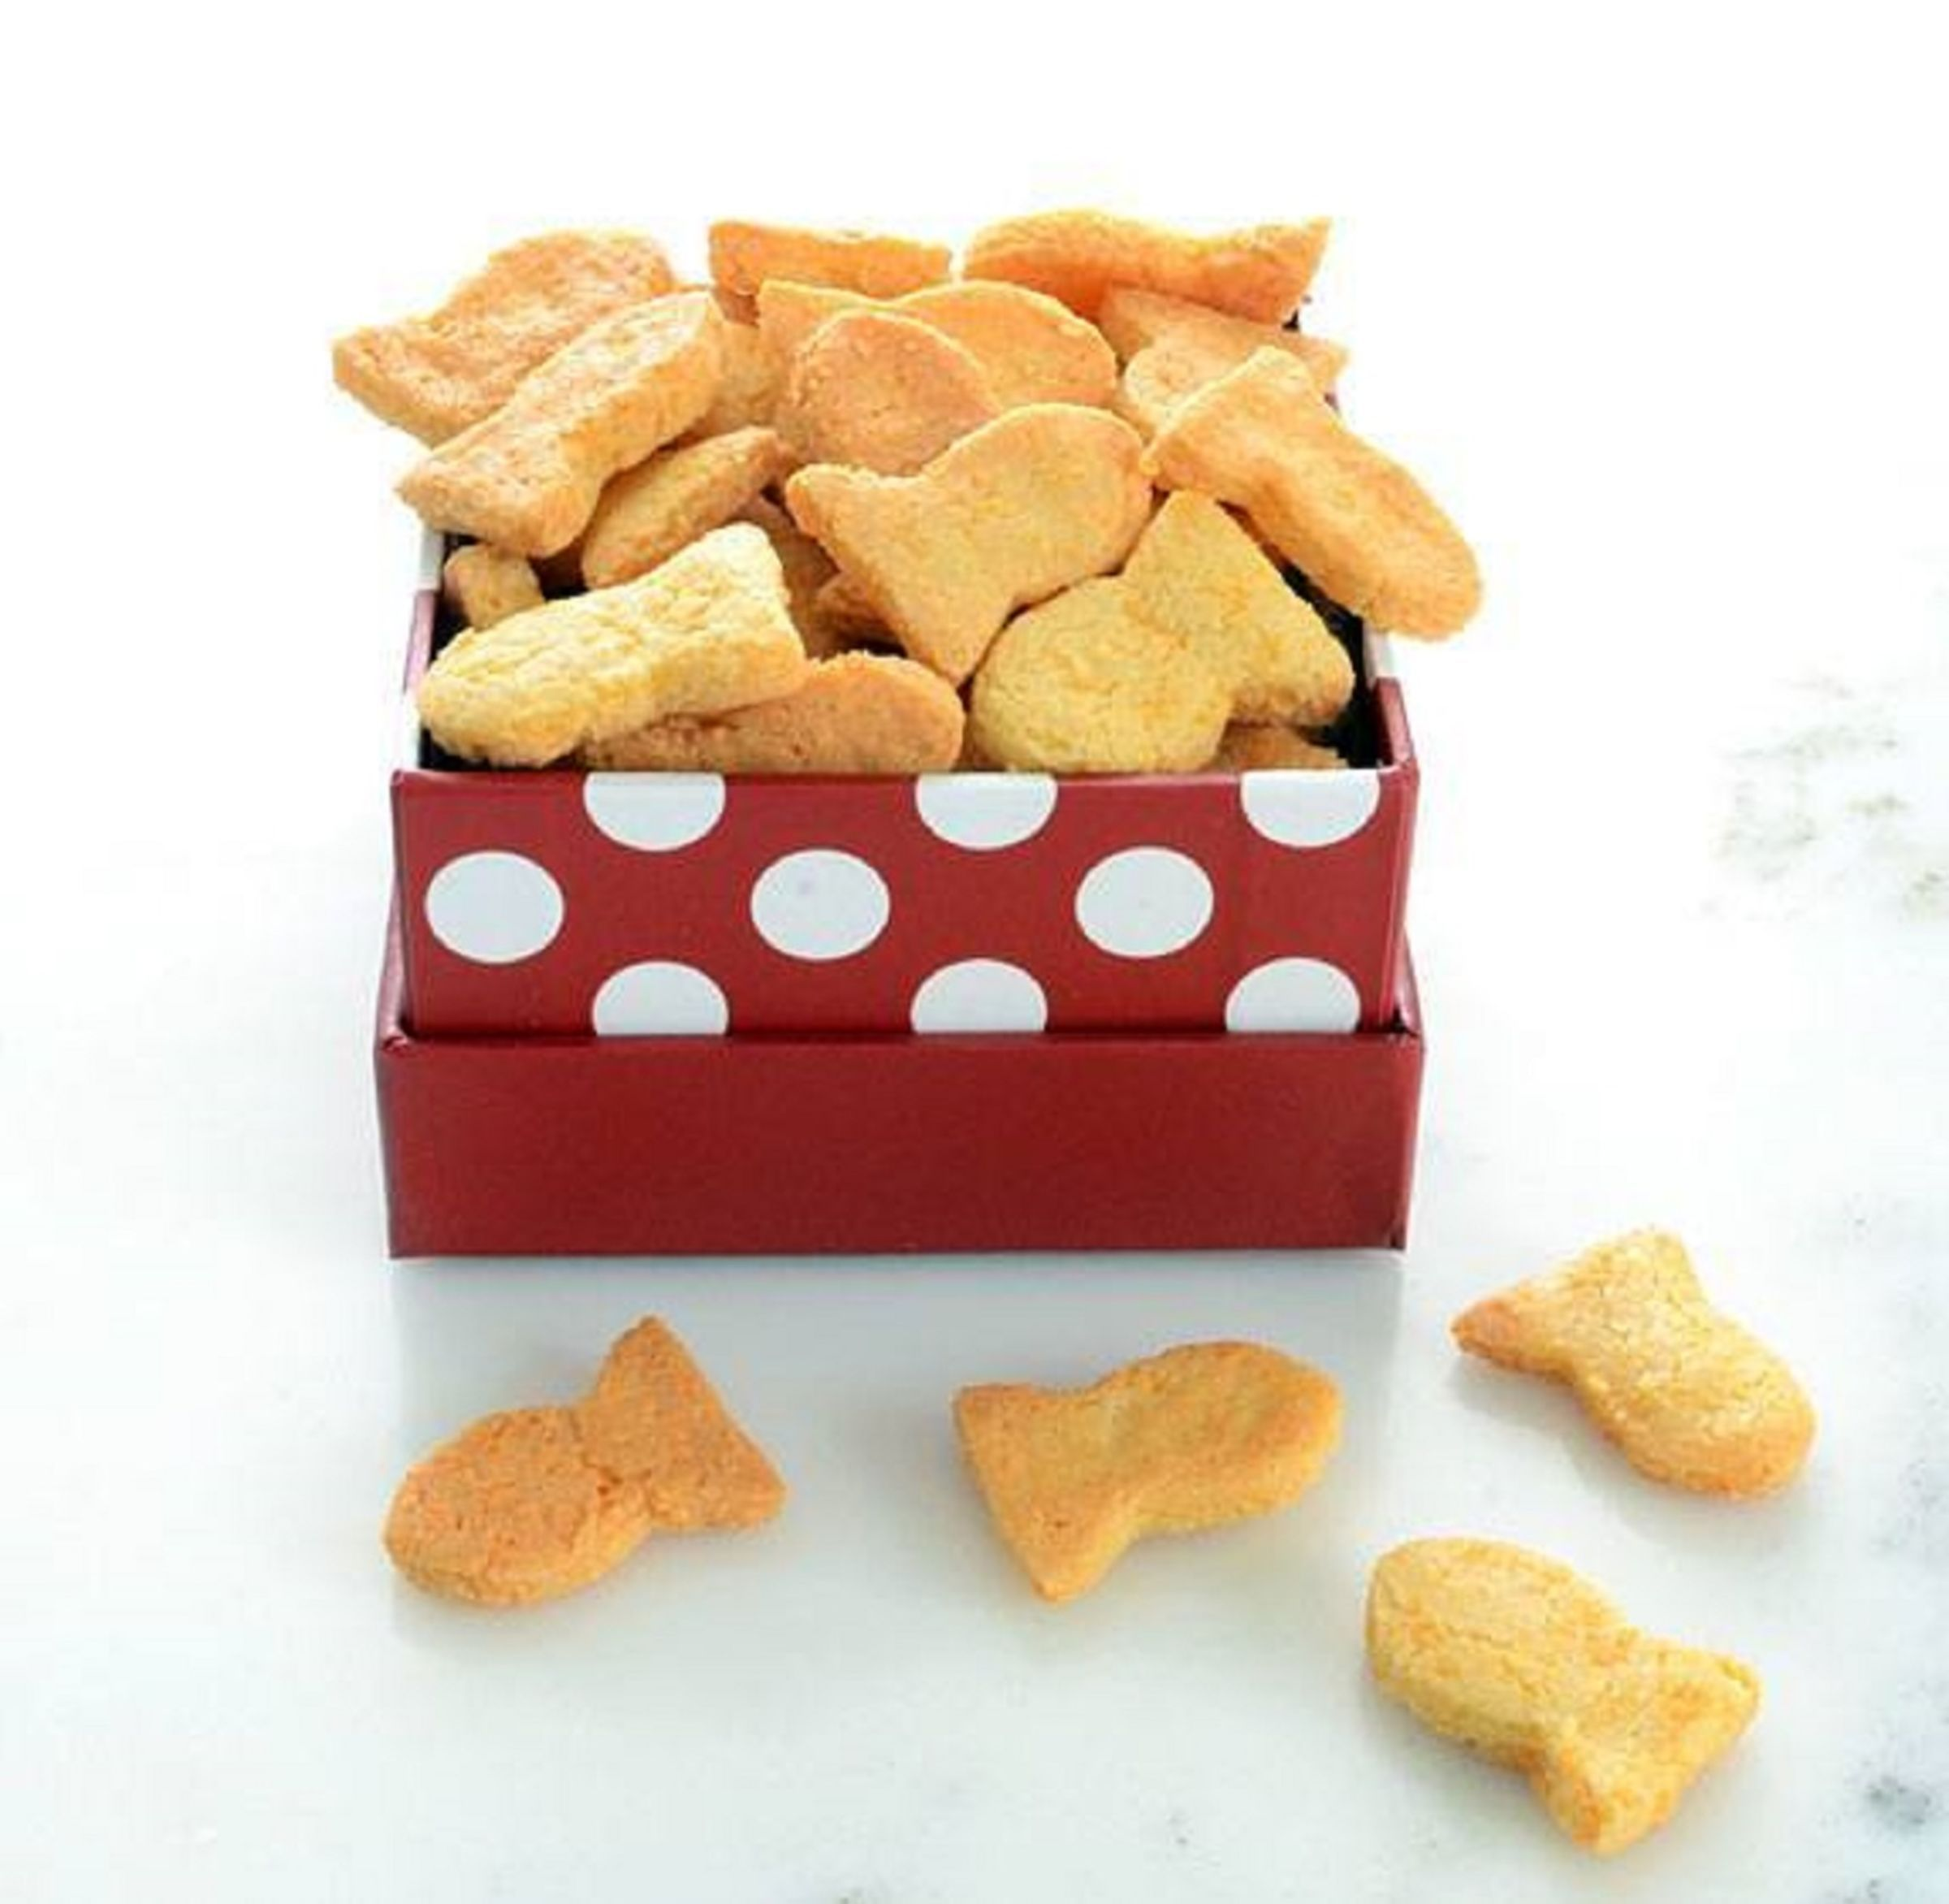 Homemade Goldfish Crackers are surprisingly easy to make